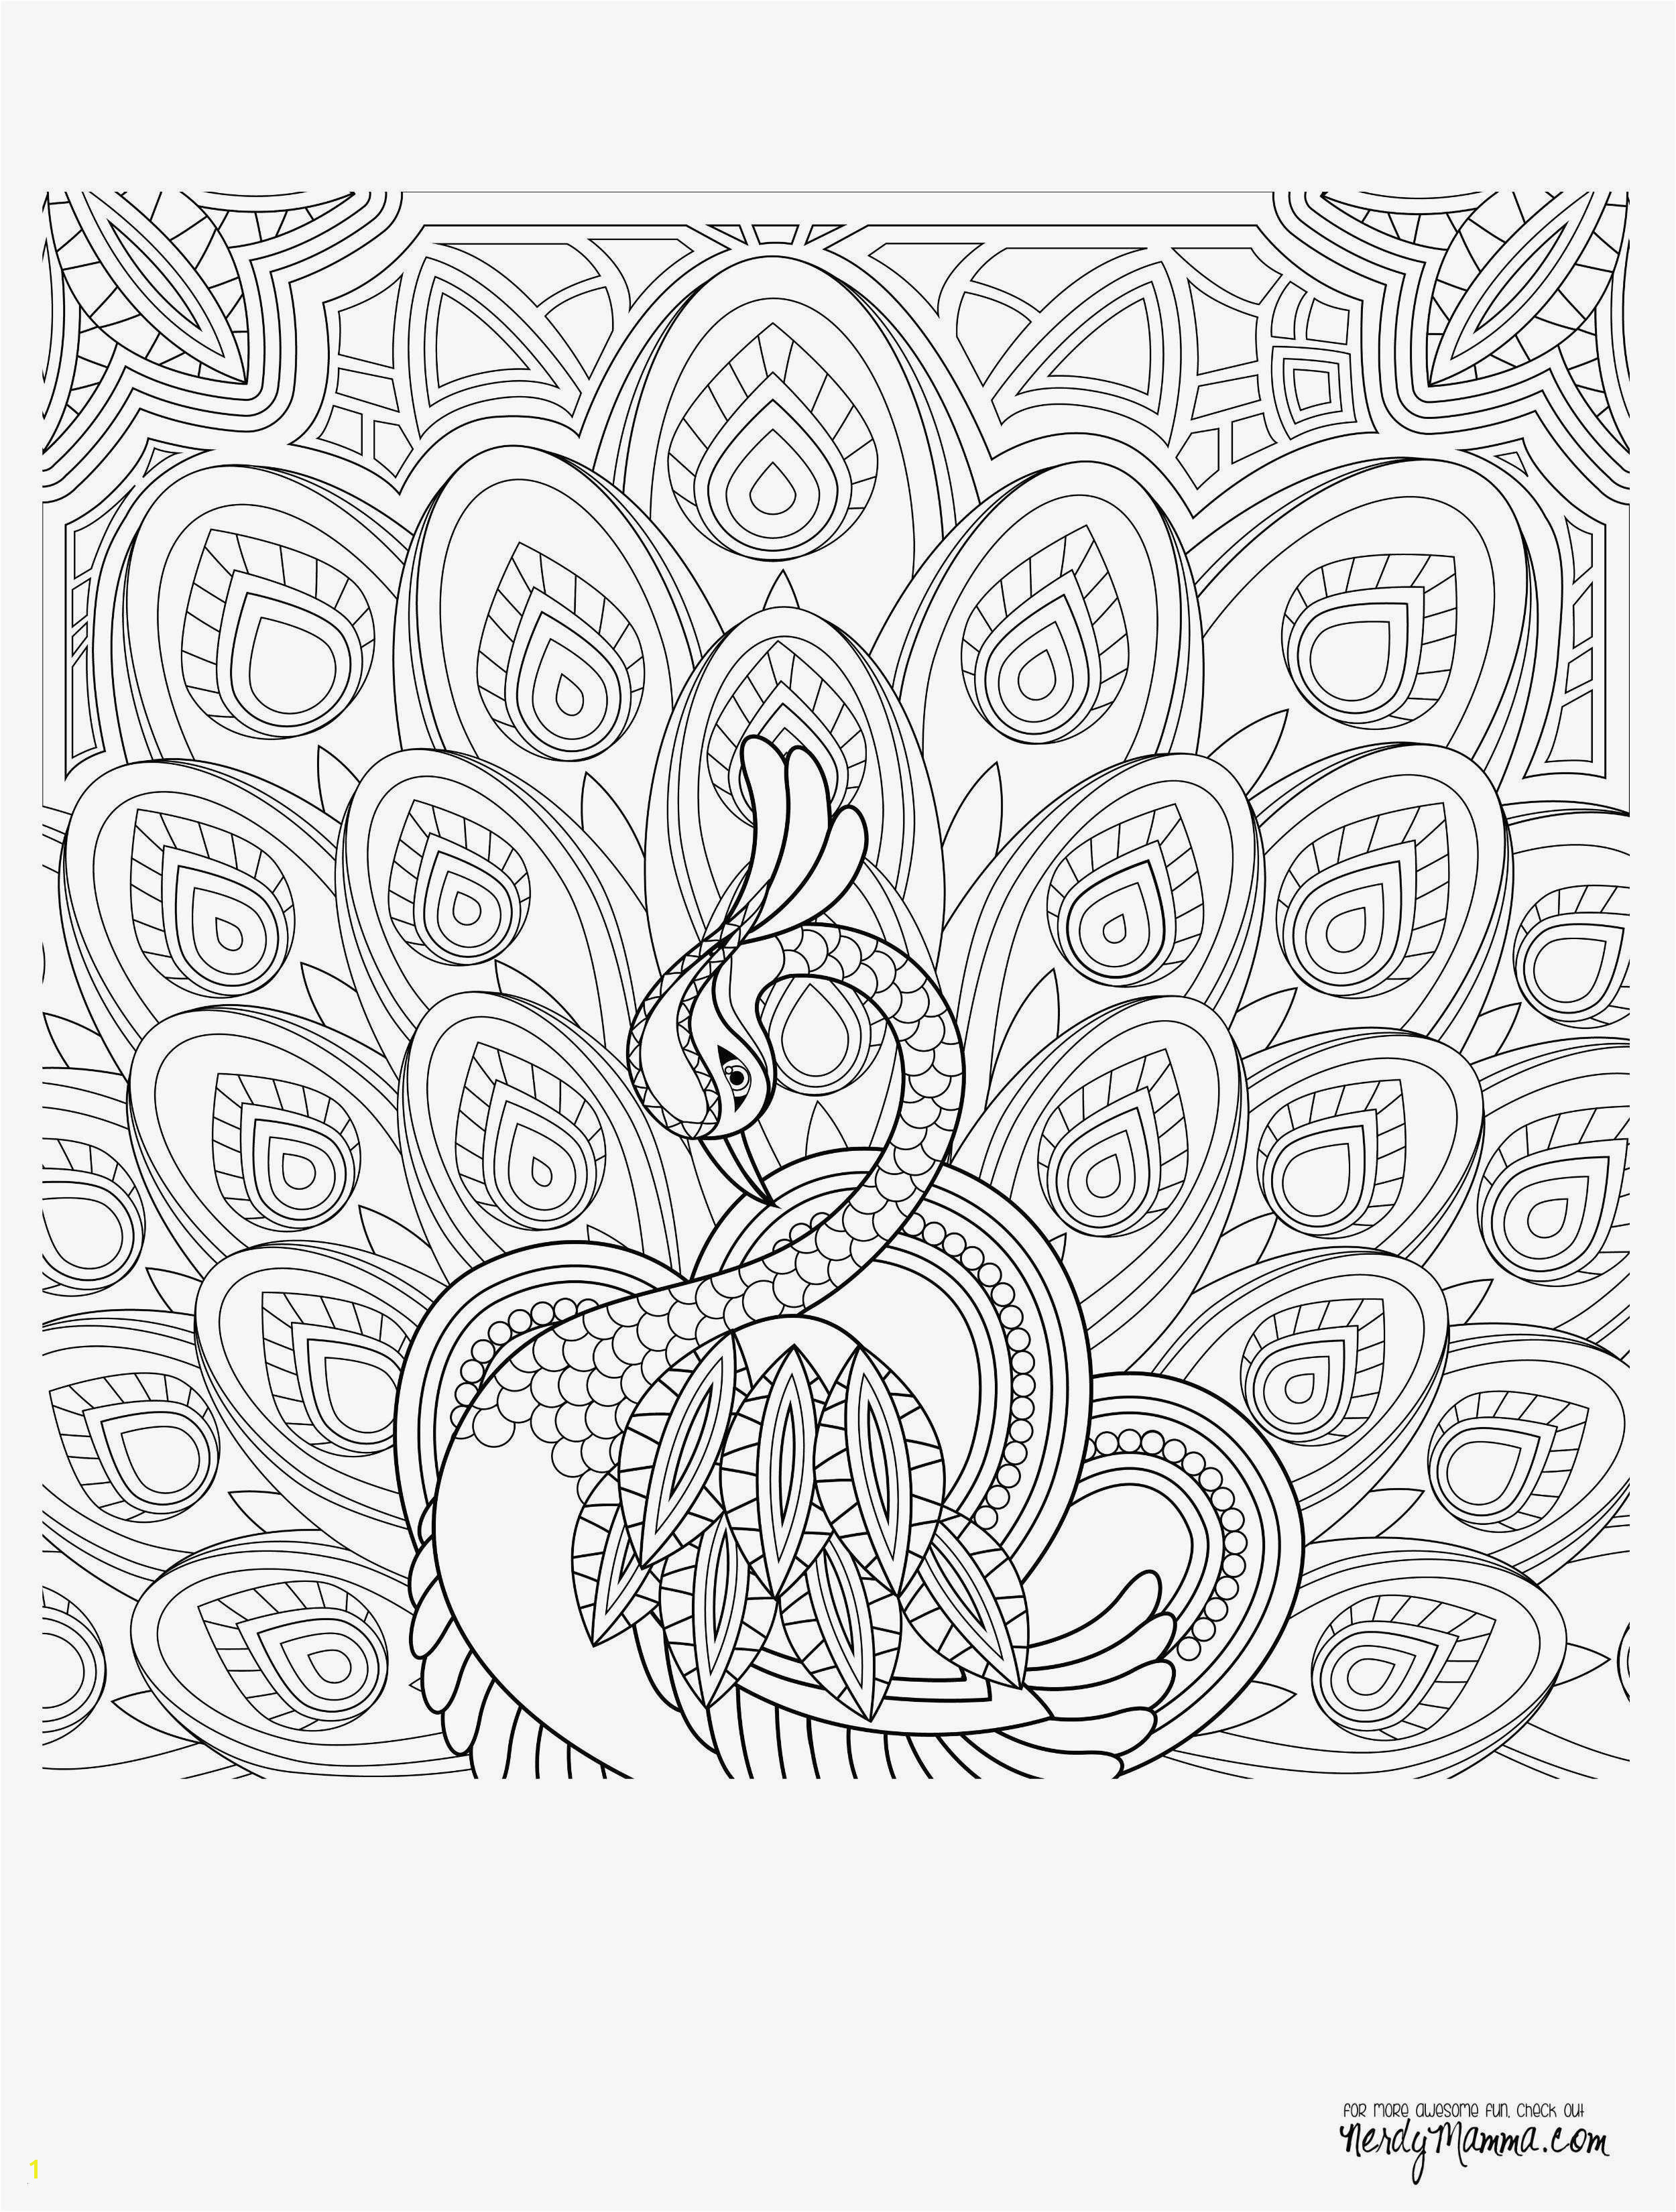 Paintings for Kids to Draw Design Fun Painting Games for Kids Lovely Awesome Coloring Pages Games